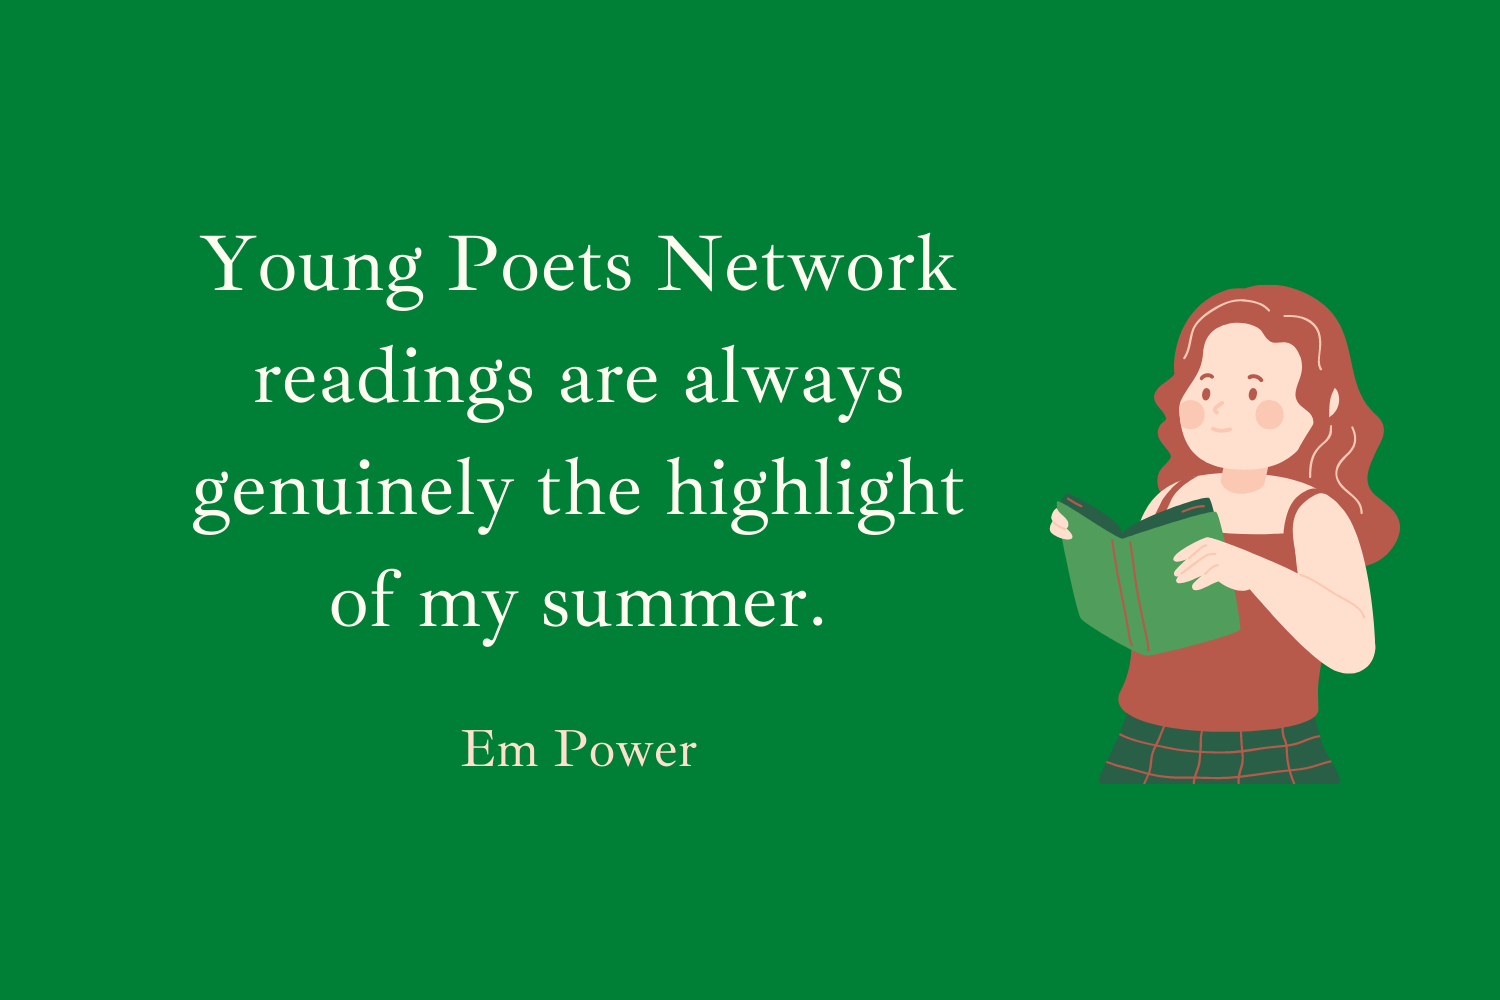 YPN readings are always genuinely the highlight of my summer. Em Power